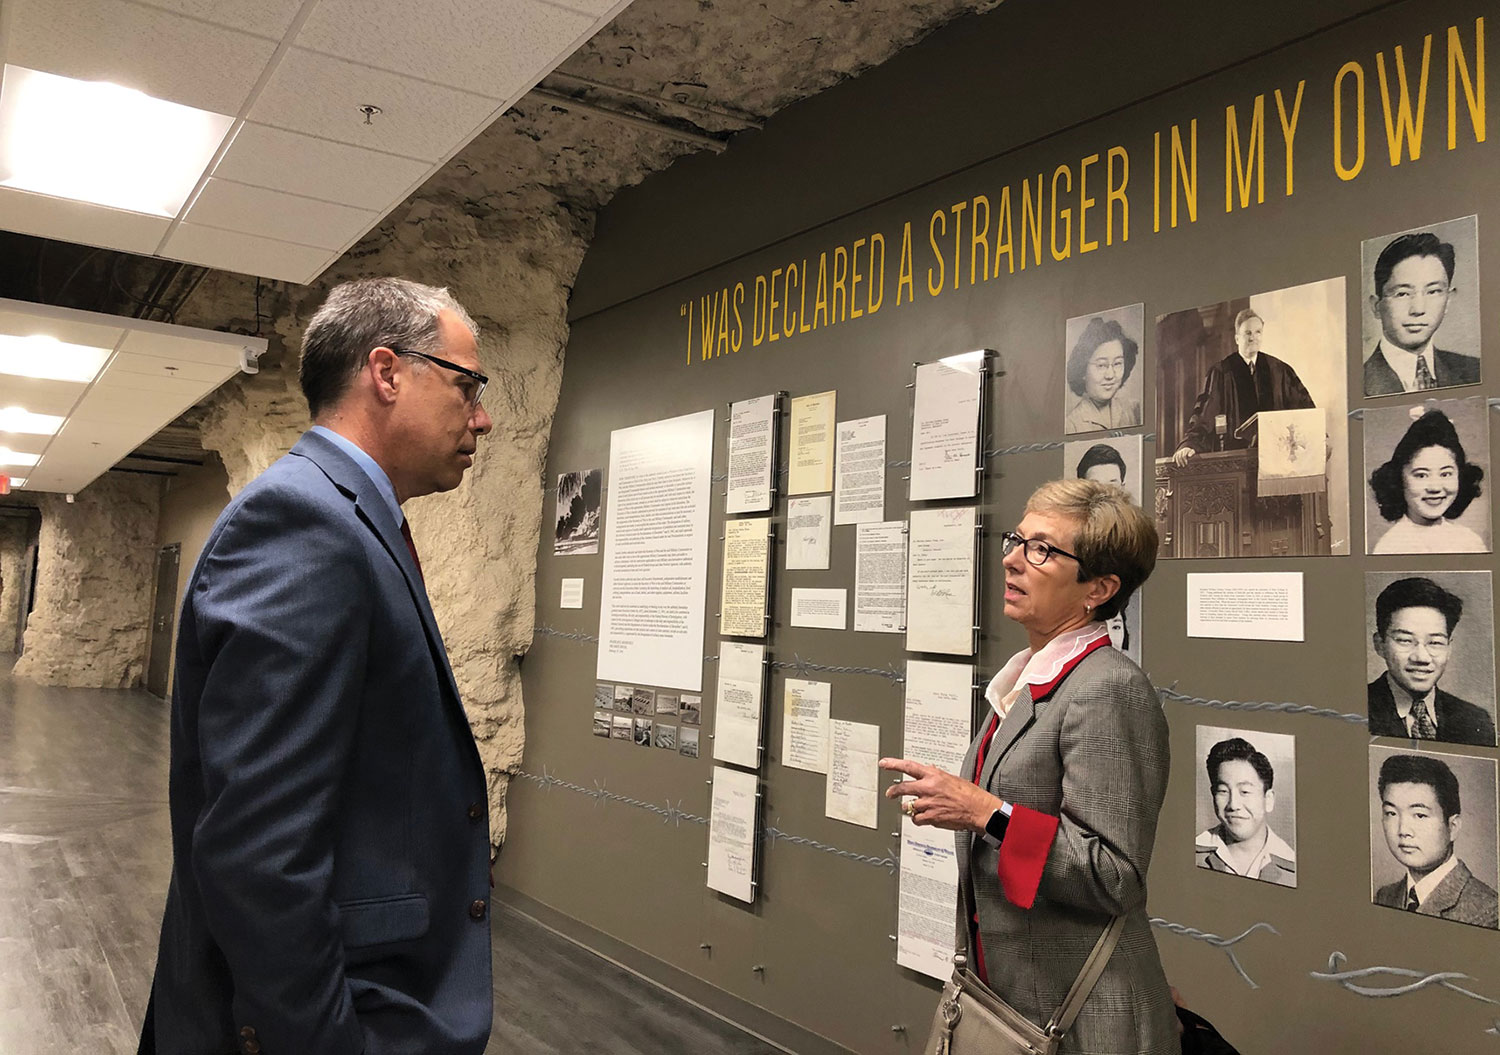 Park University's Associate Vice President for University Engagement Eric Bergrud provides Ambassador Canavan with a university tour during her visit Dec. 4, 2019.